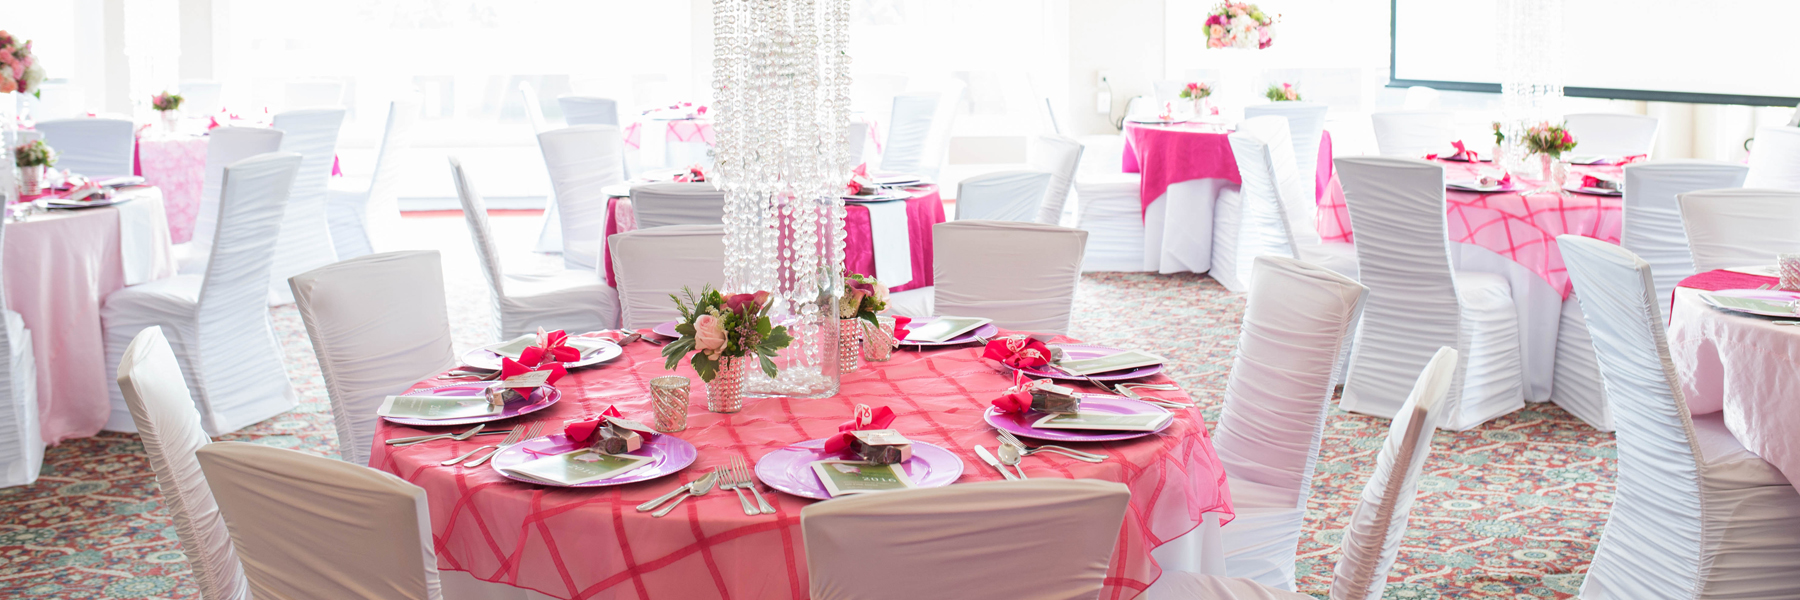 pink table set up